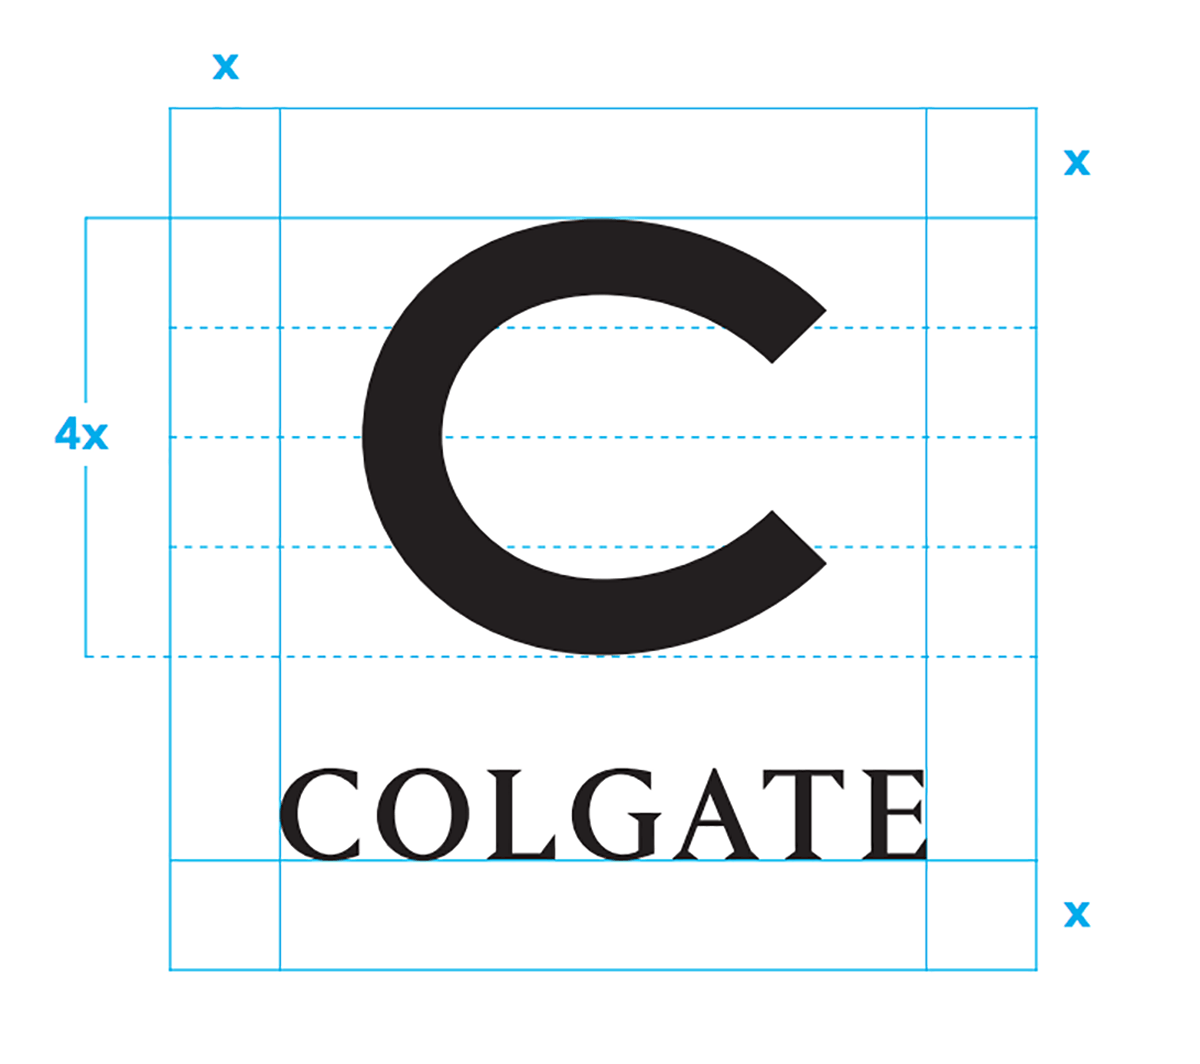 Colgate C logo and clear space